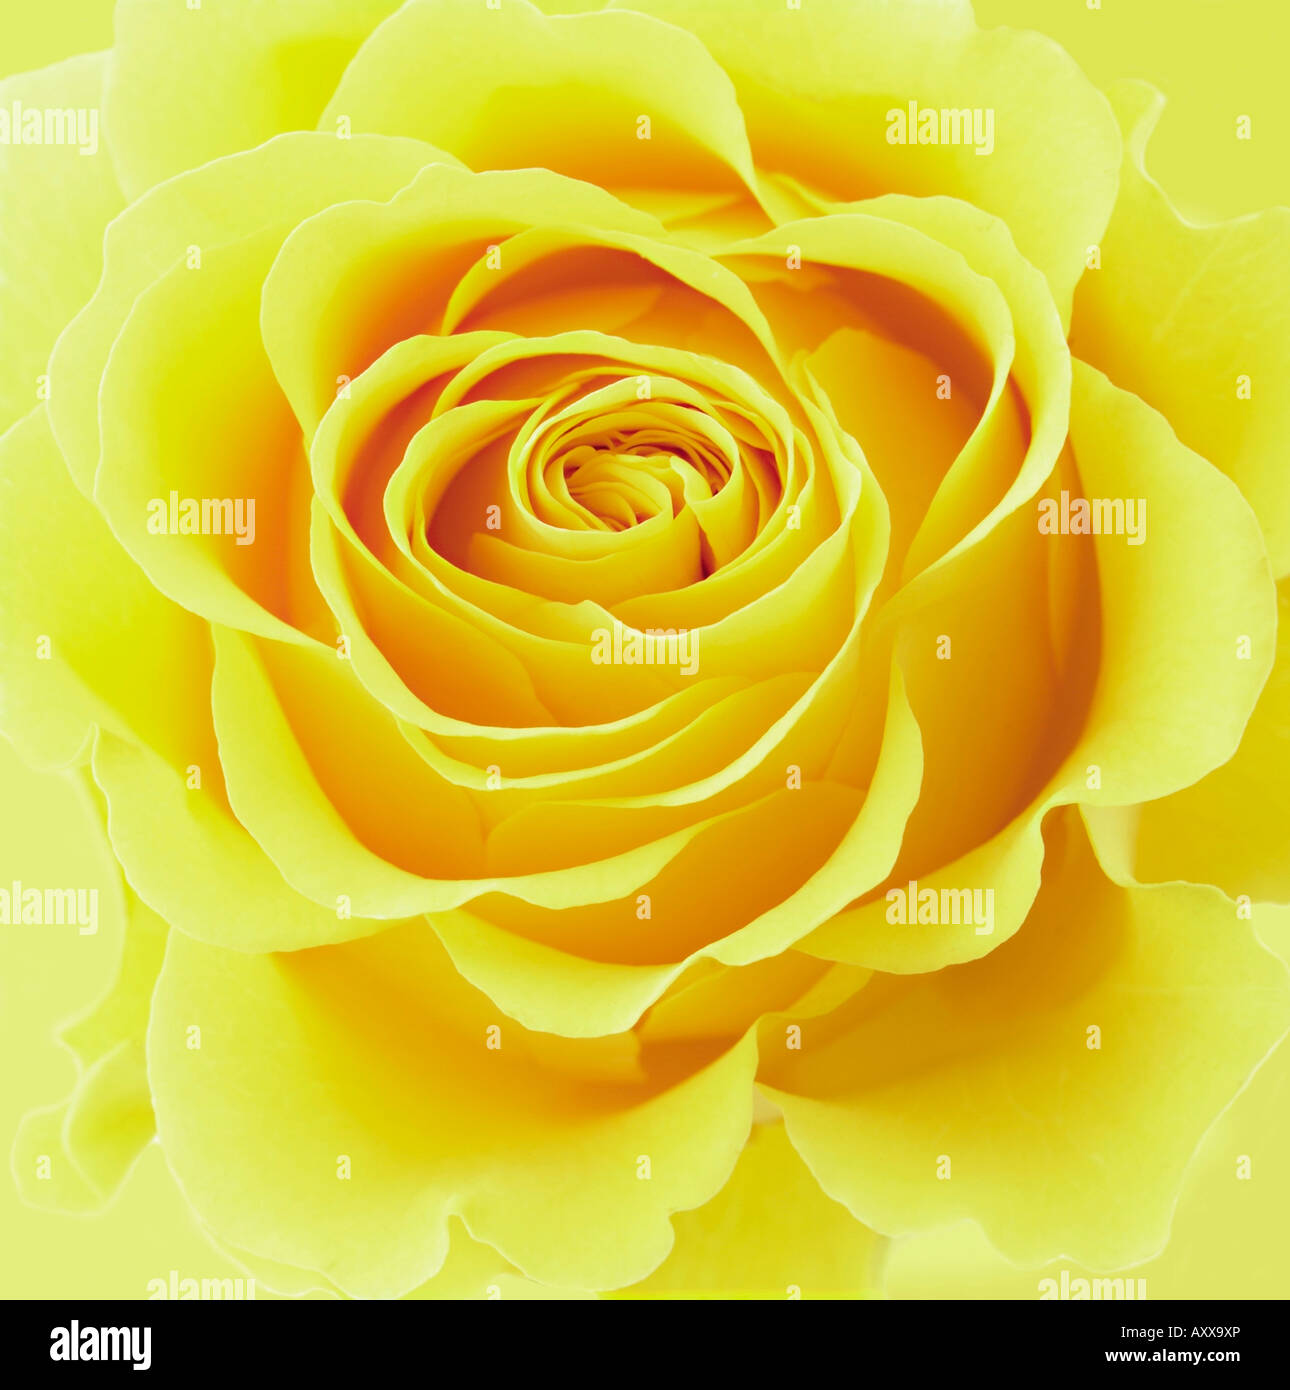 Flower Plant Rose Rosa Yellow Flower Close Up Stock Photo